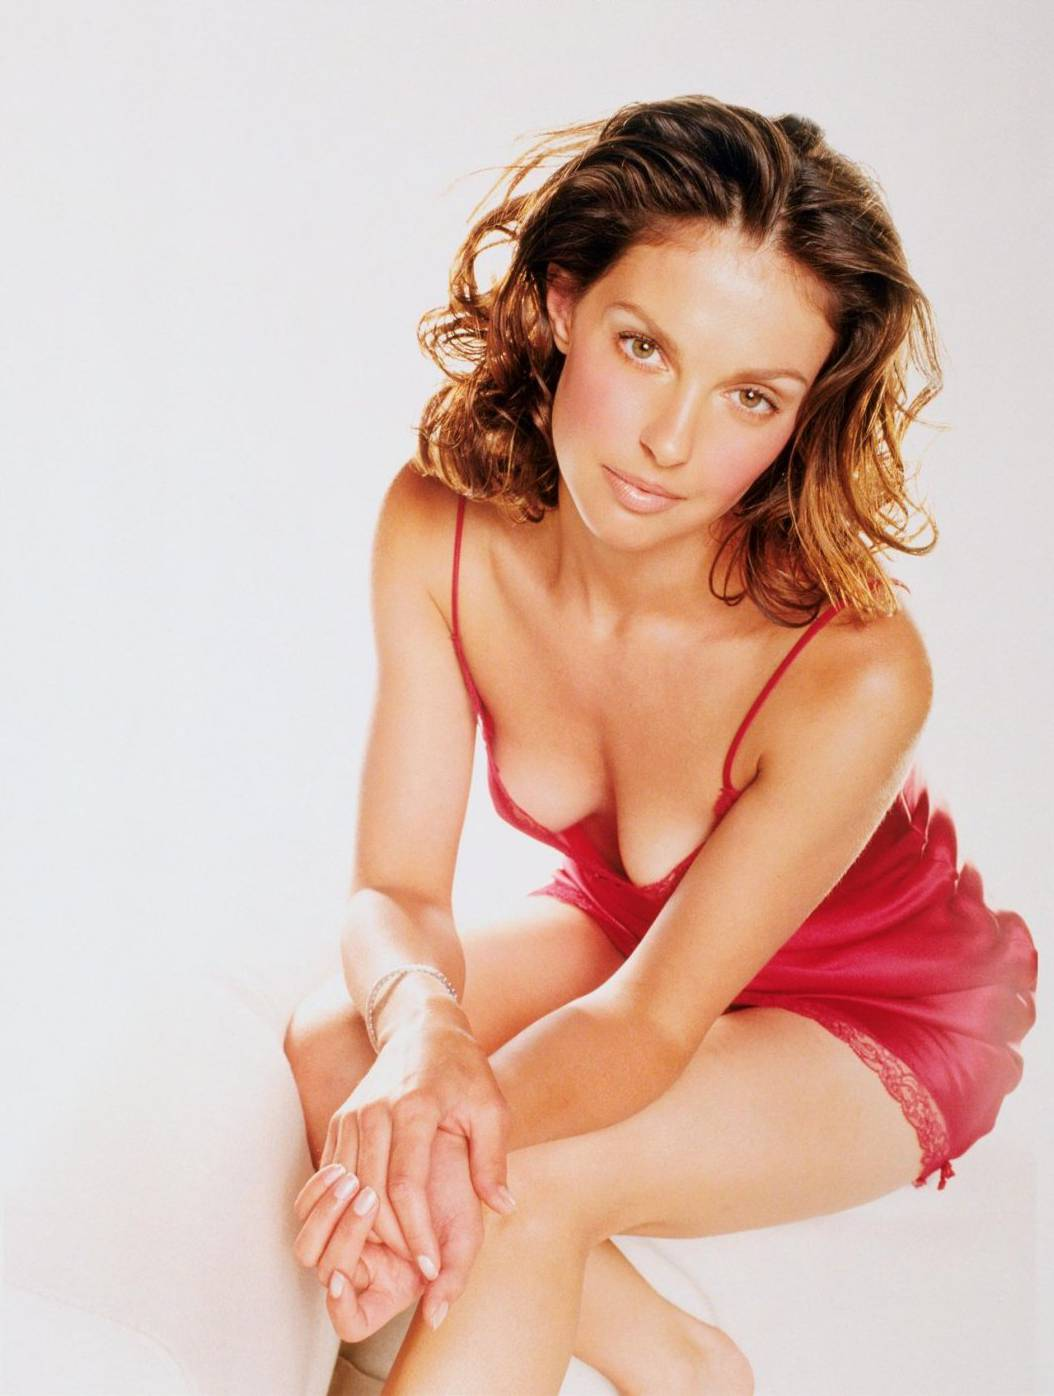 Ashley judd nue photo